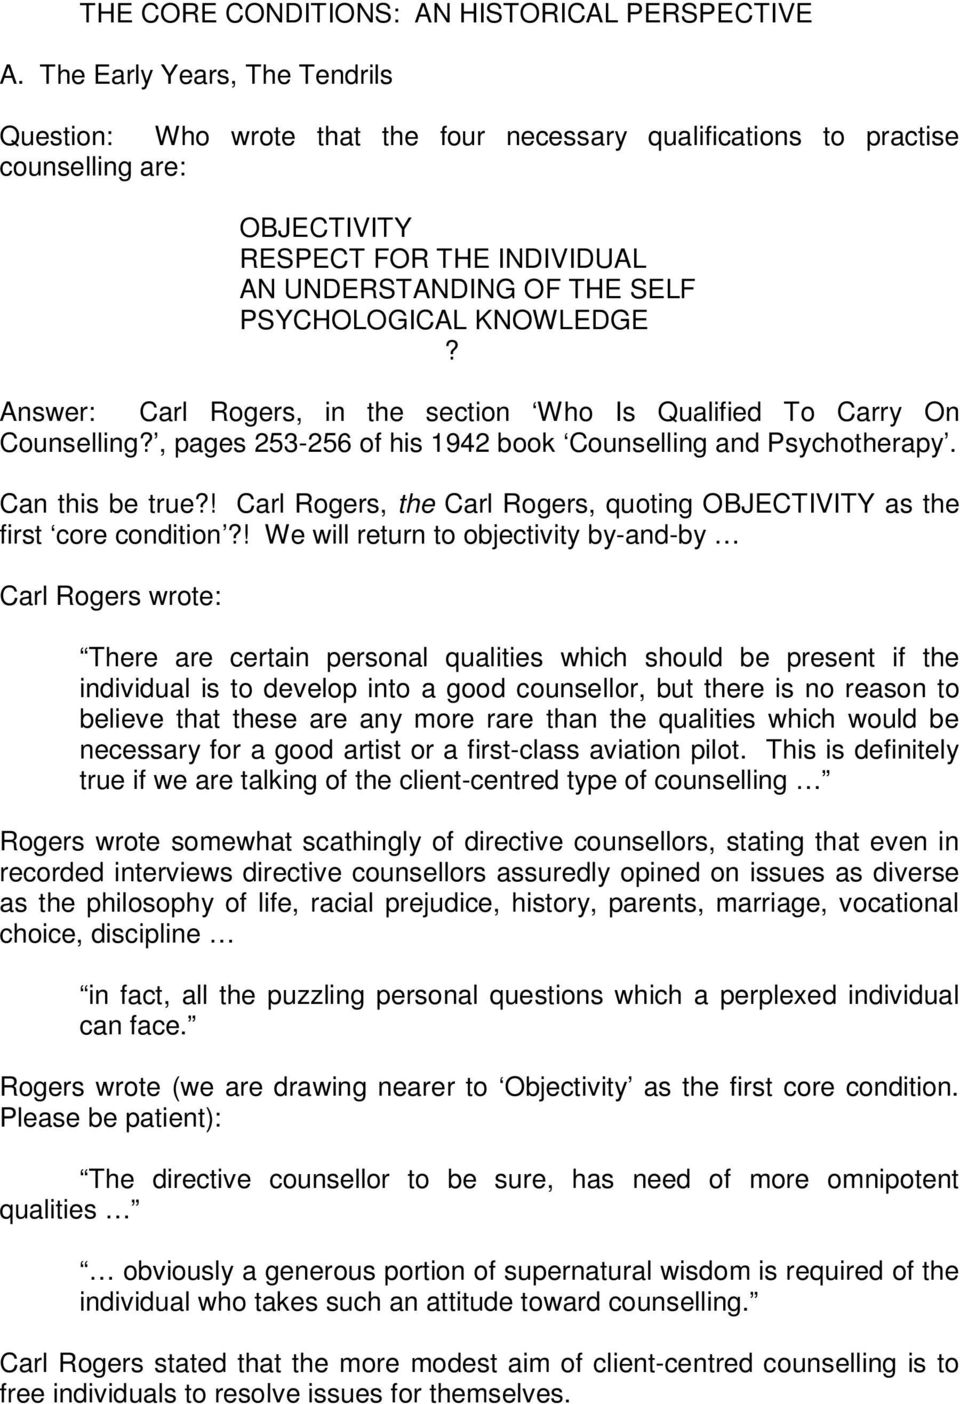 carl rogers conditions